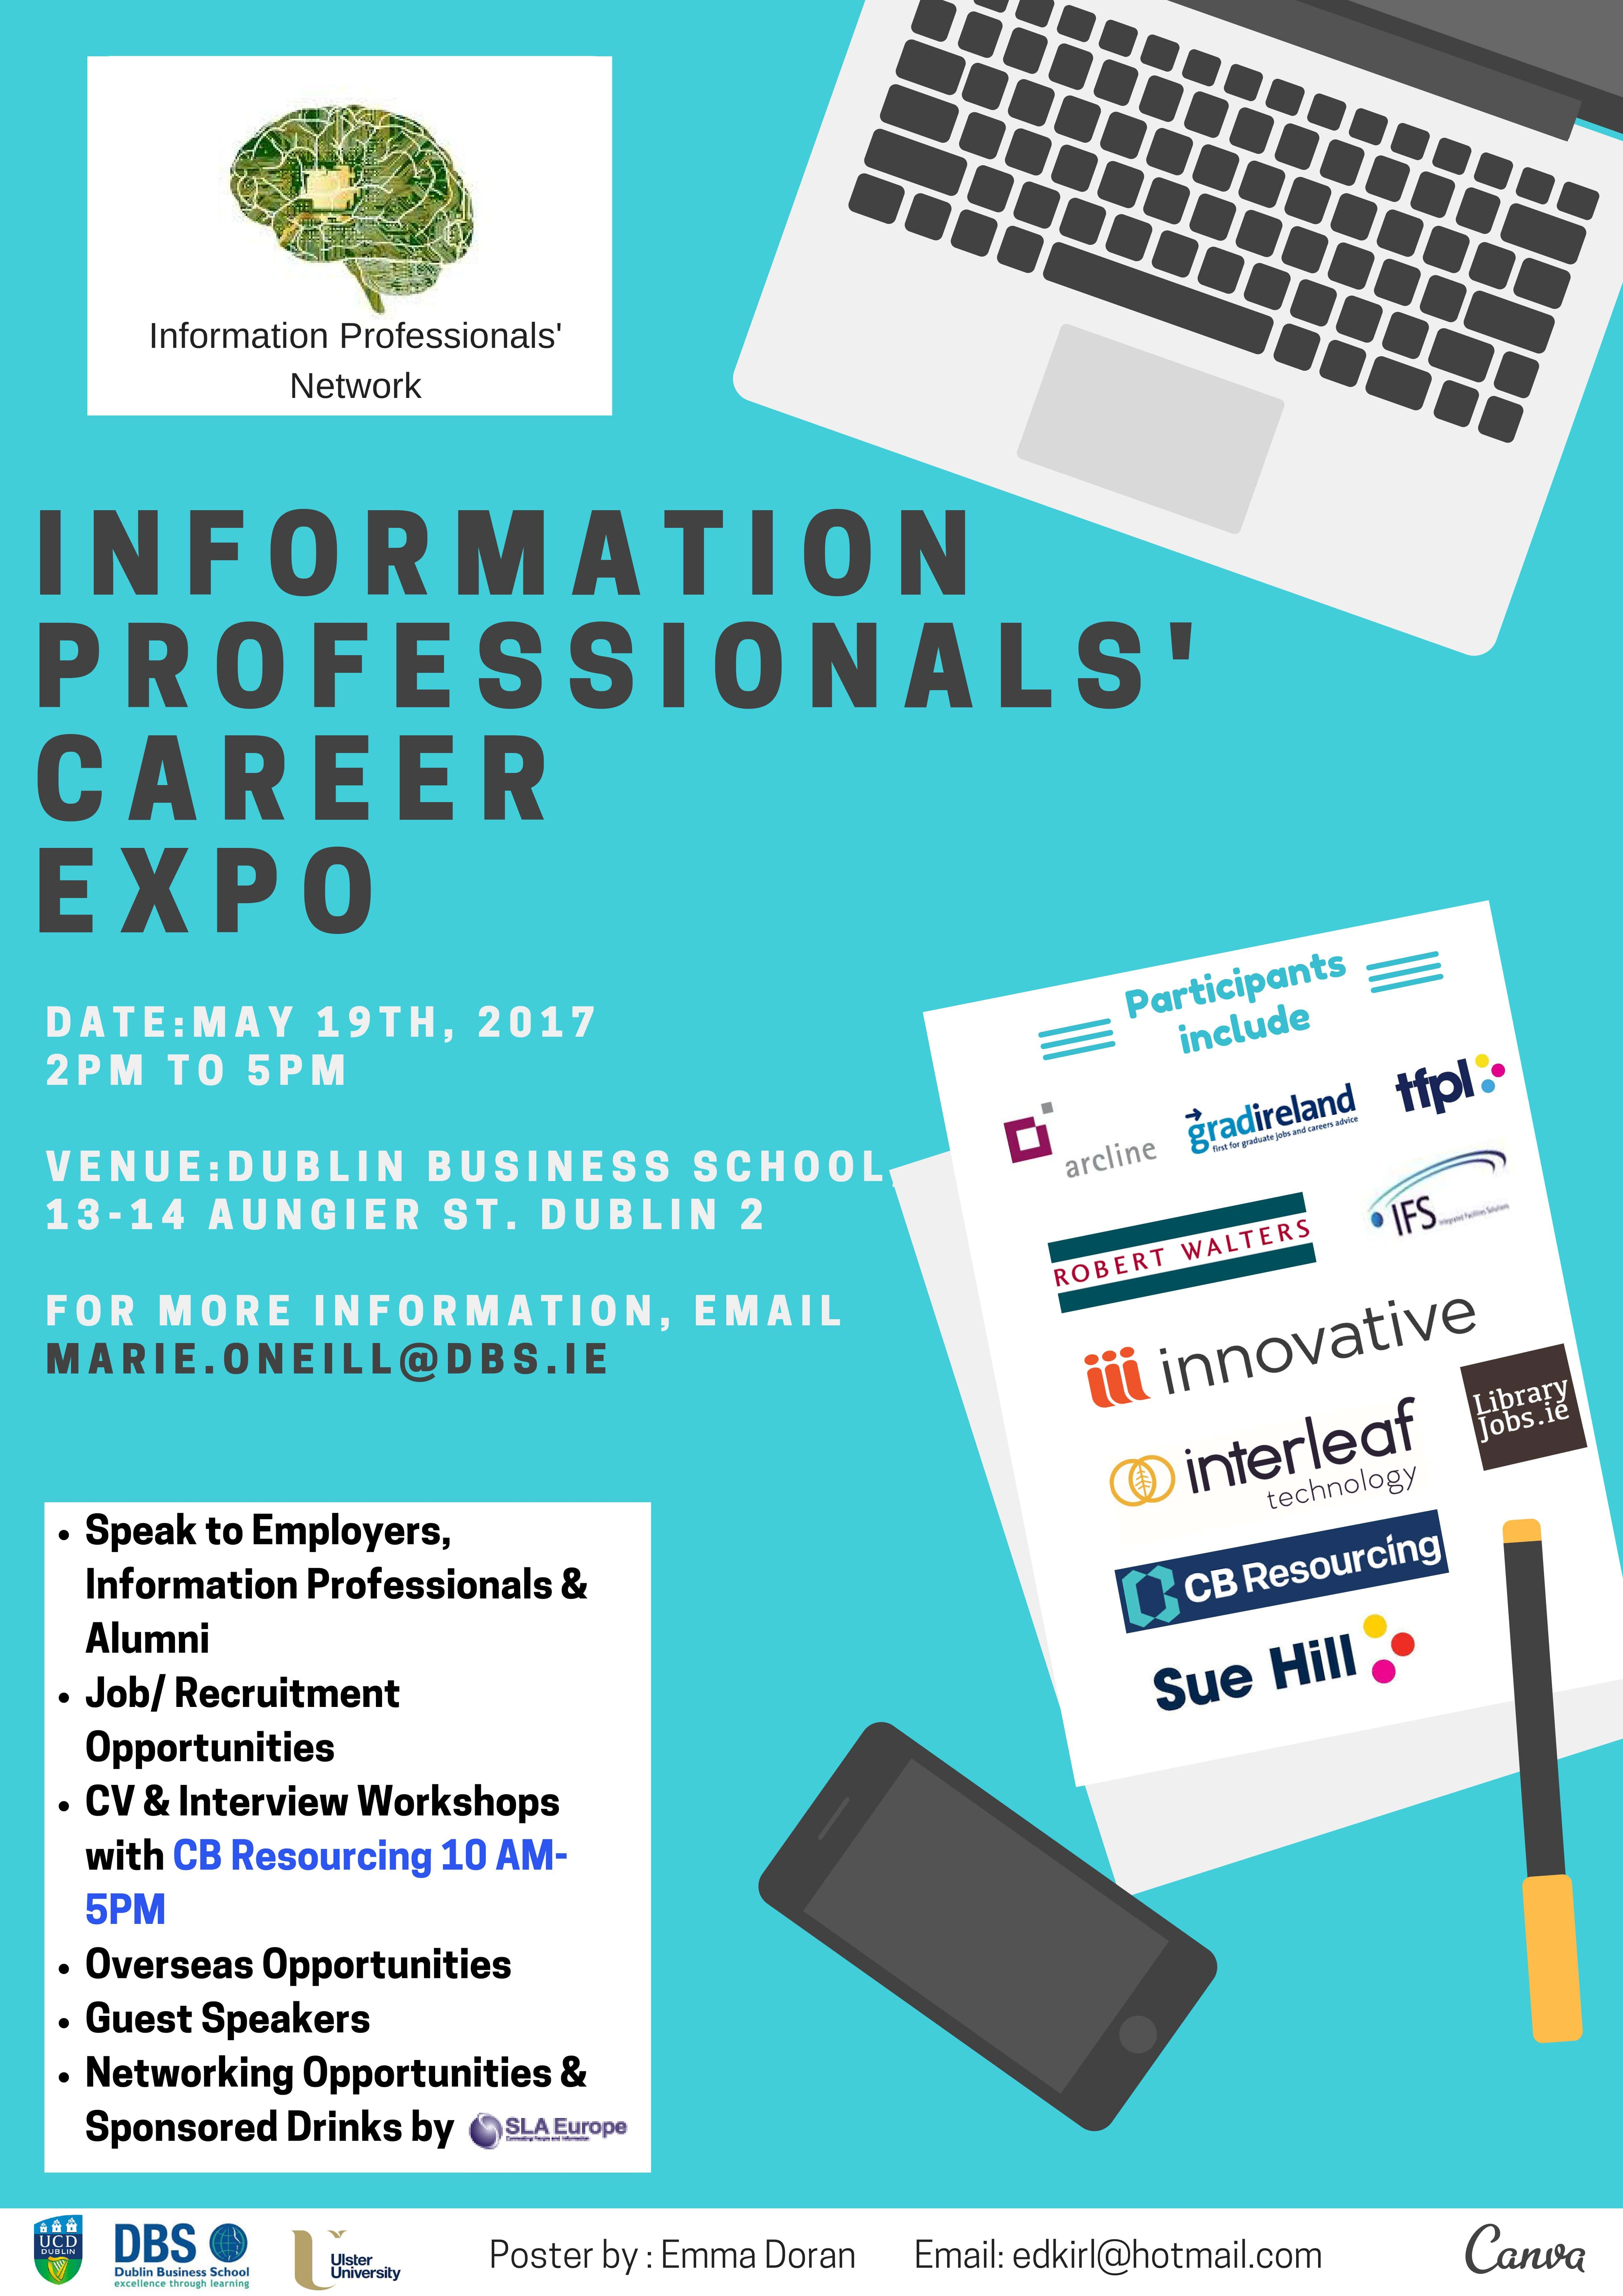 Information Professionals Network Careers Expo Poster